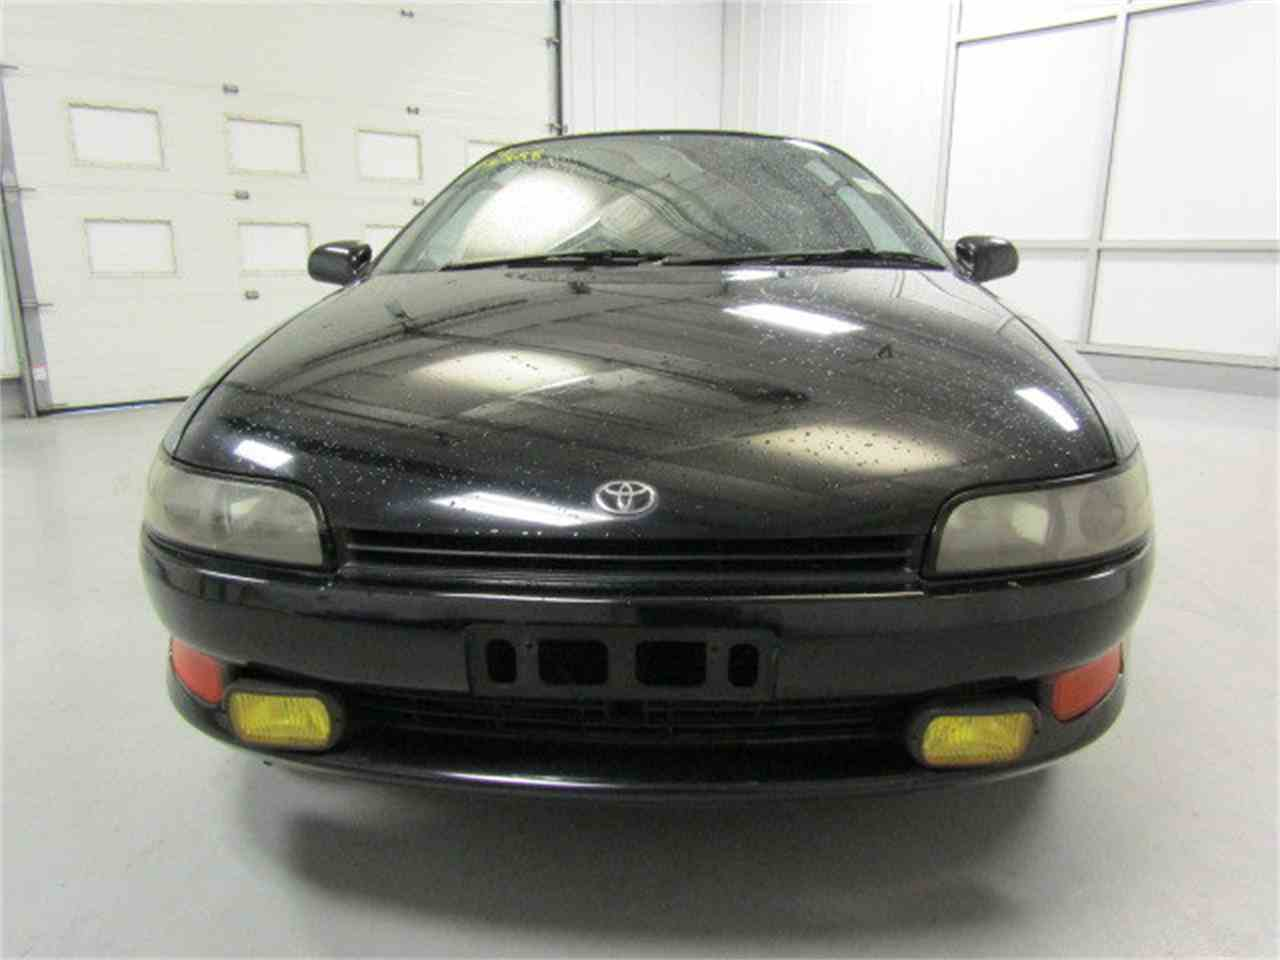 Large Picture of '91 Toyota Sera located in Virginia - $8,888.00 - JLC3